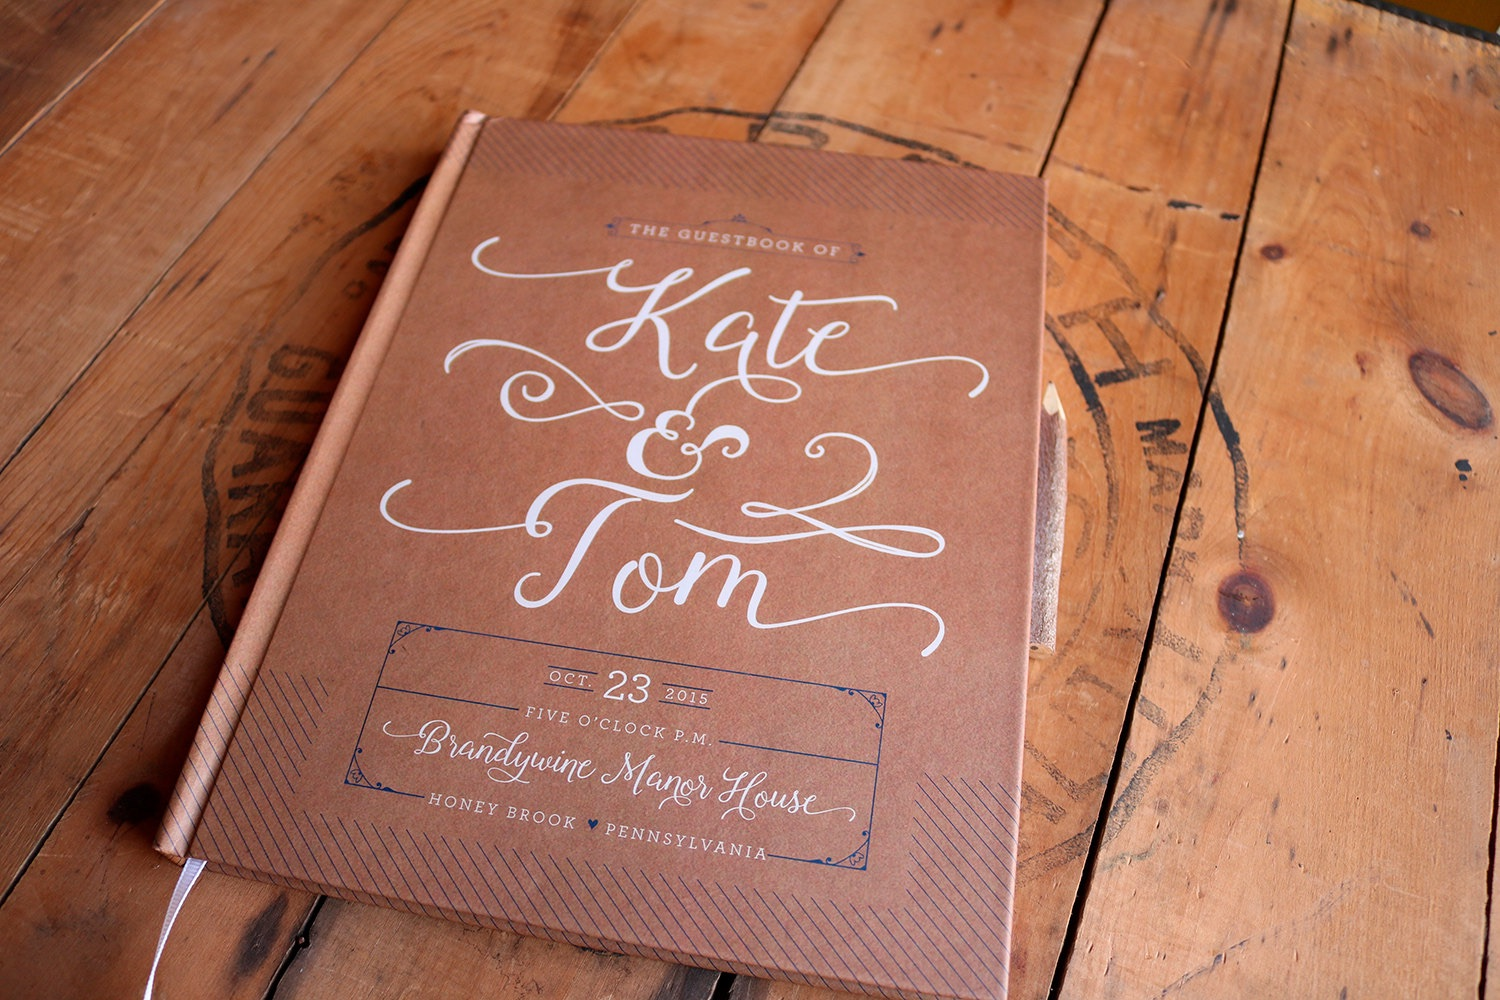 unique-wedding-ideas-rustic-wedding-guest-book-102516.jpg